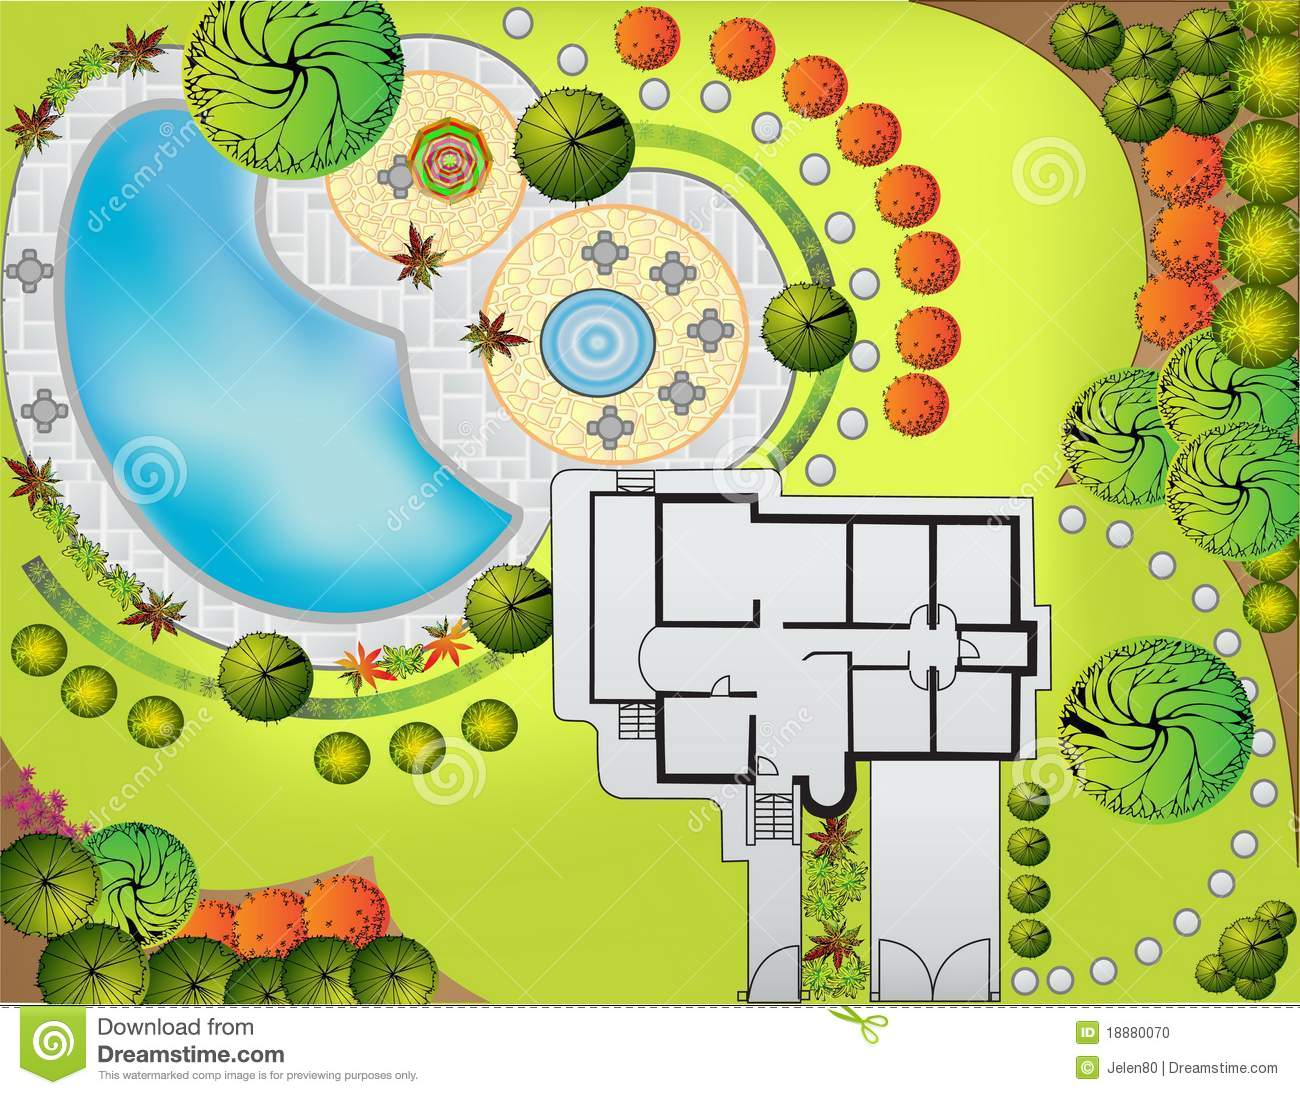 Plan of landscape and garden stock photo image 18880070 for Garden landscape drawing